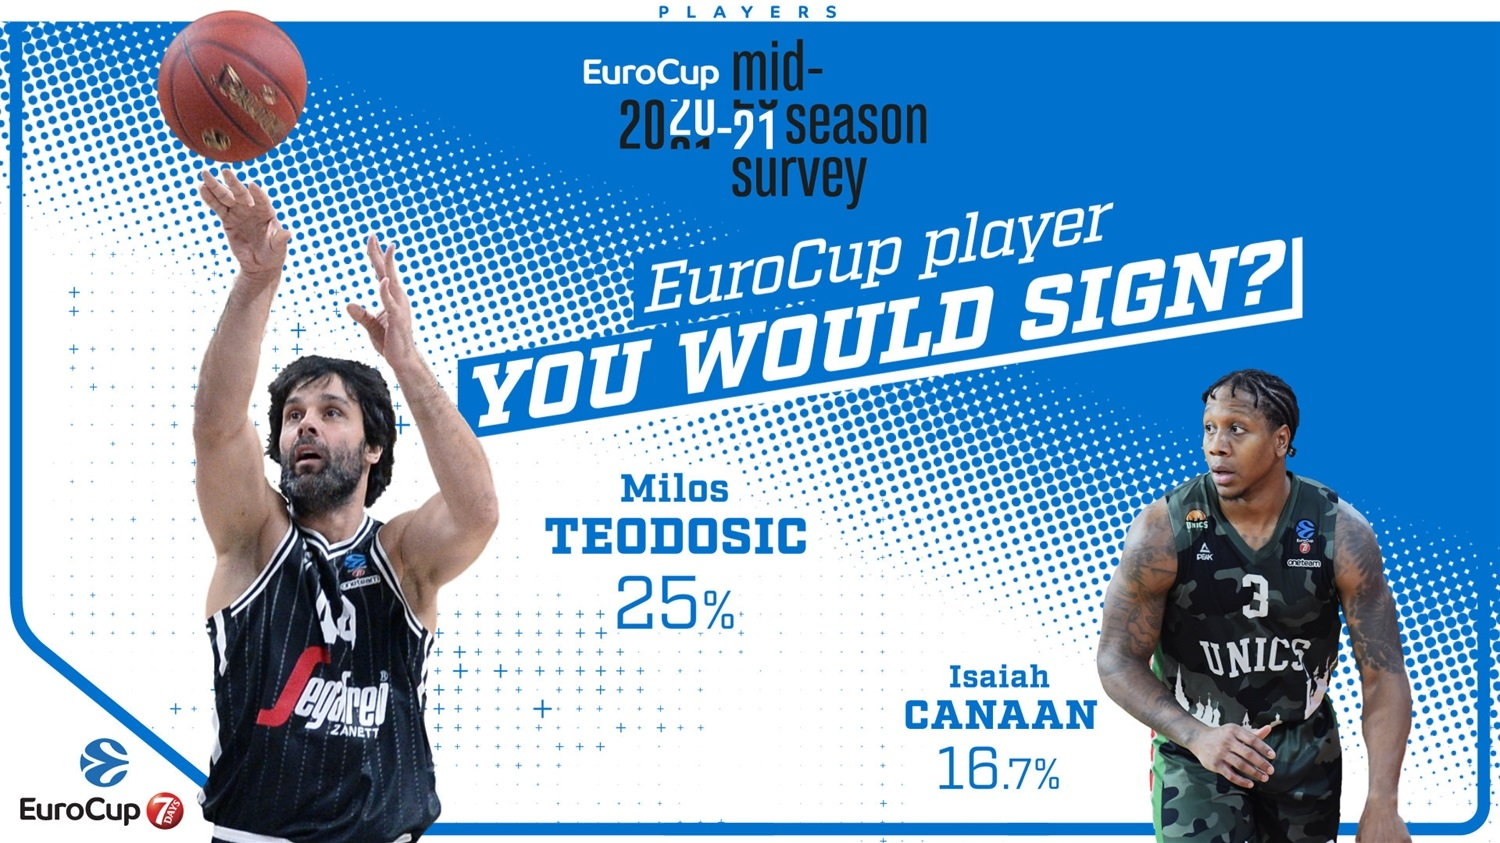 2020_21_MID-SEASON_SURVEY_player-you-would-sign_16x9